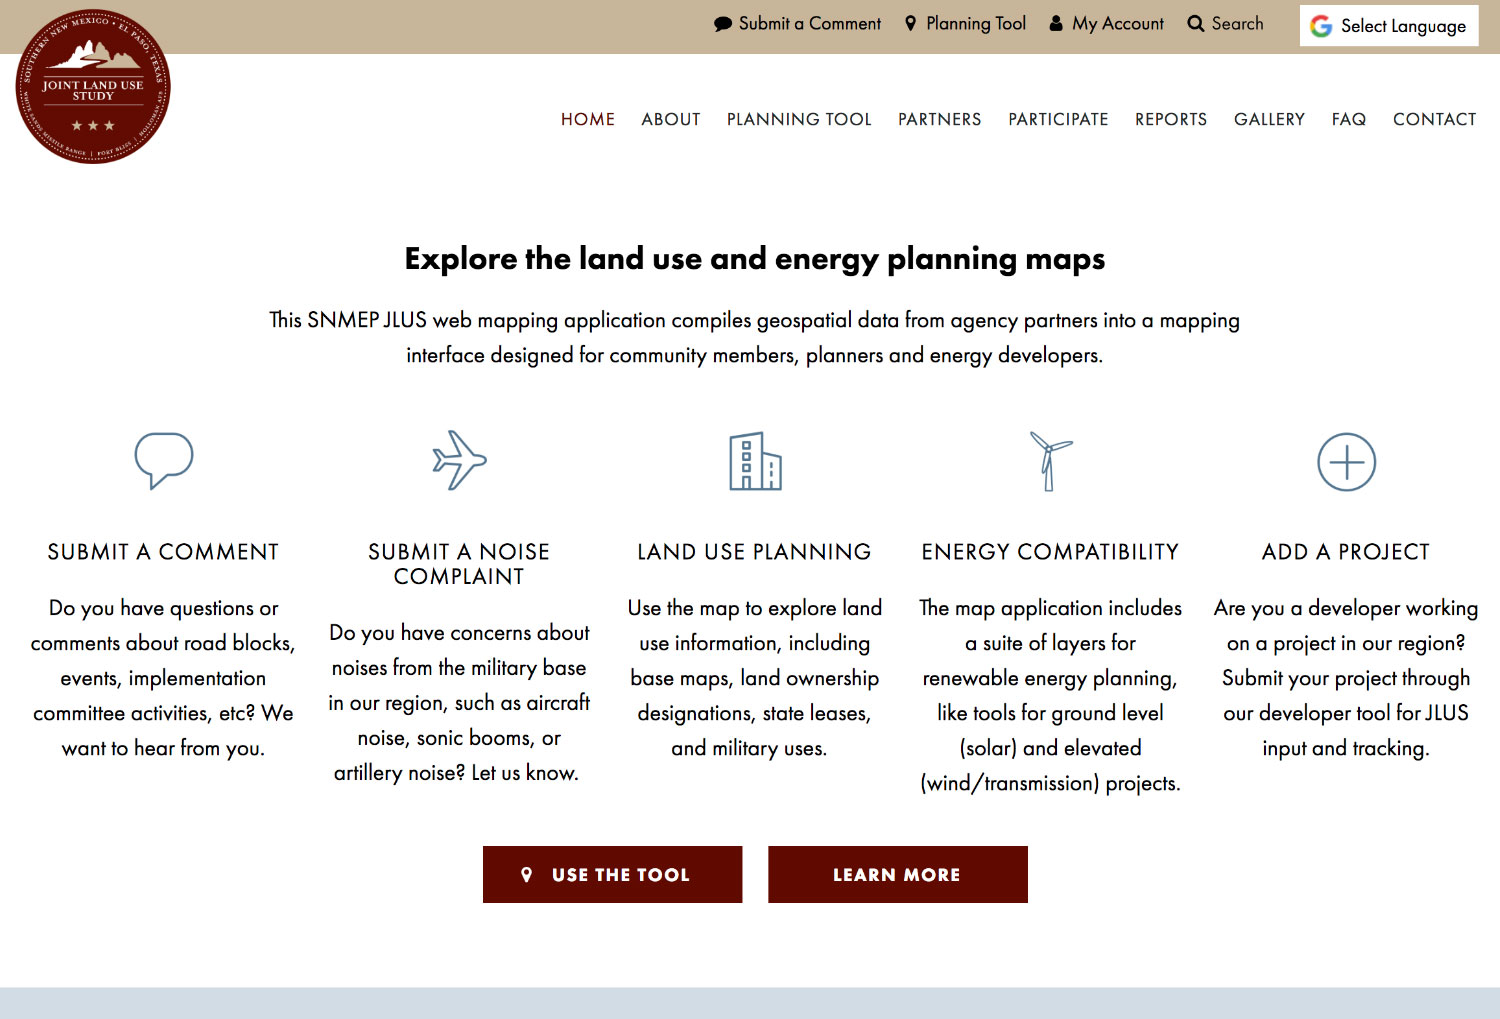 JLUS Website and Mapping Tools by Tierra Plan